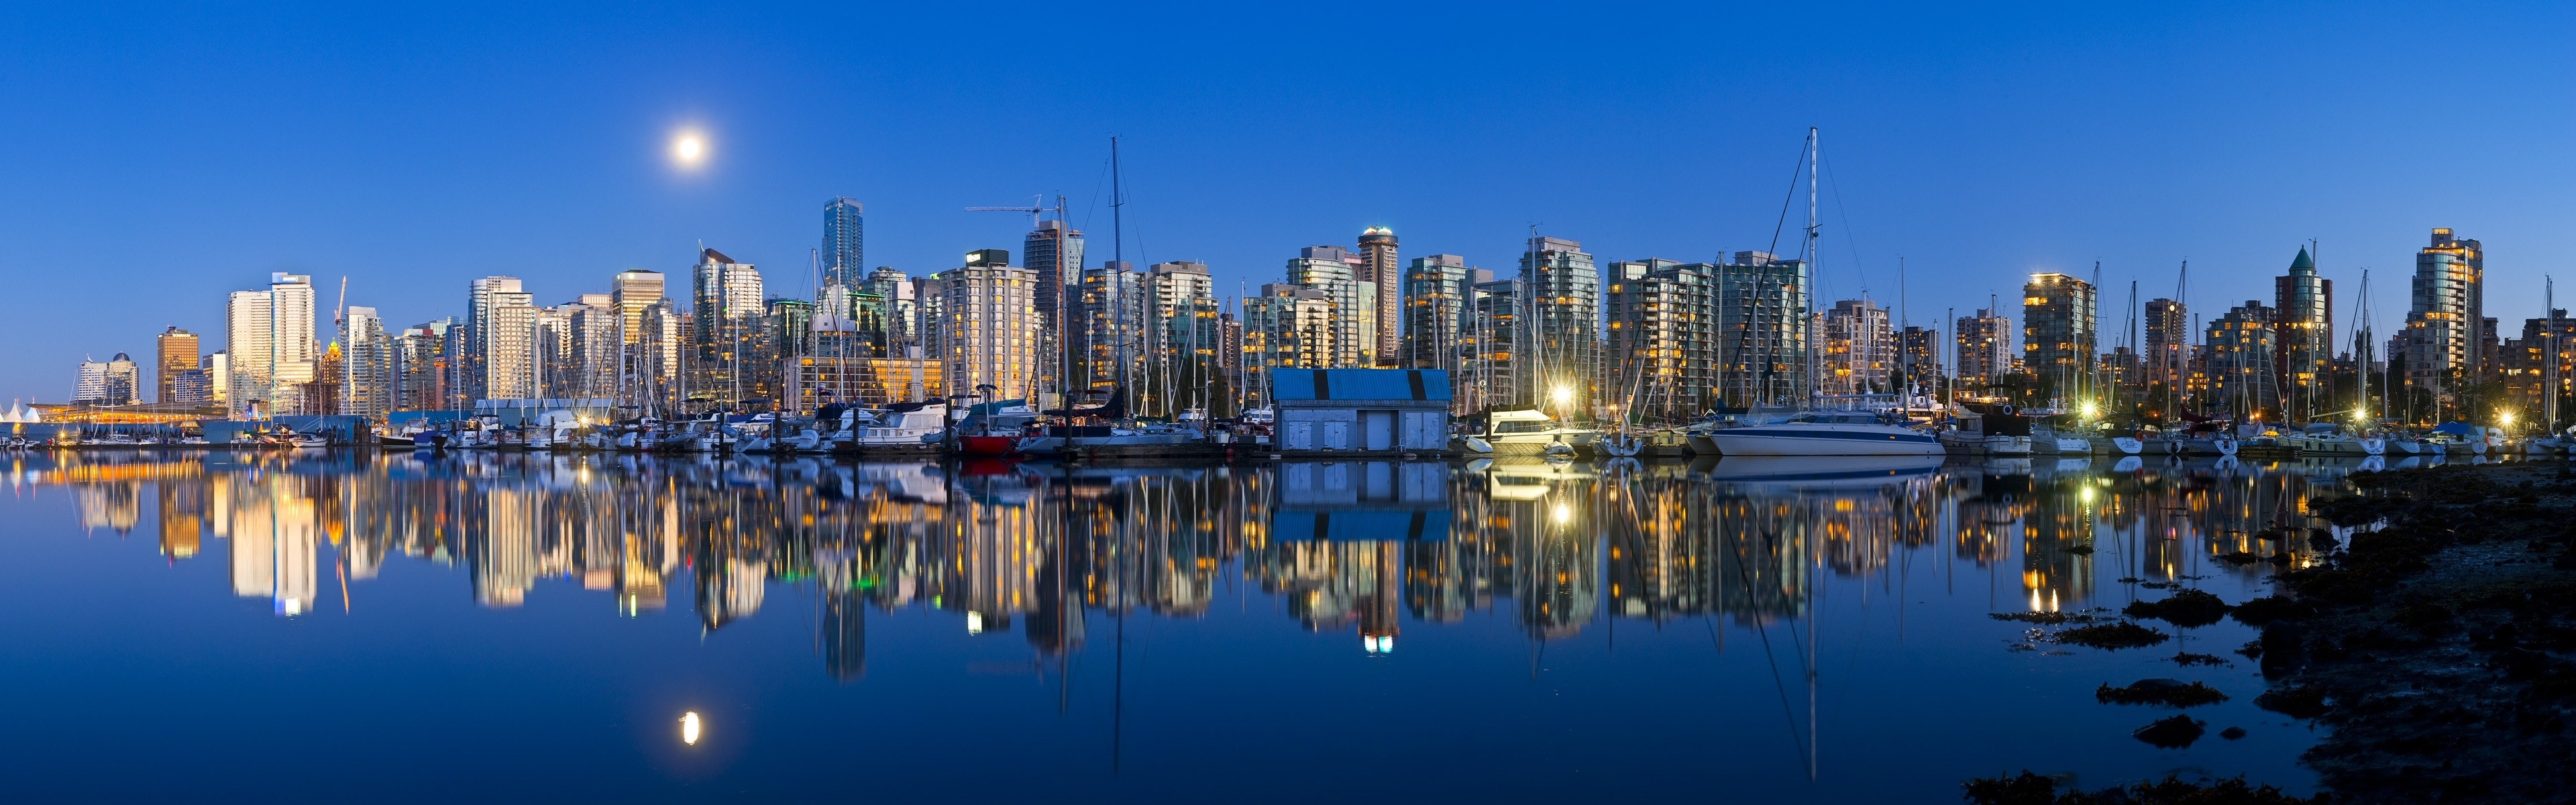 vancouver skyline wallpapers widescreen - photo #13